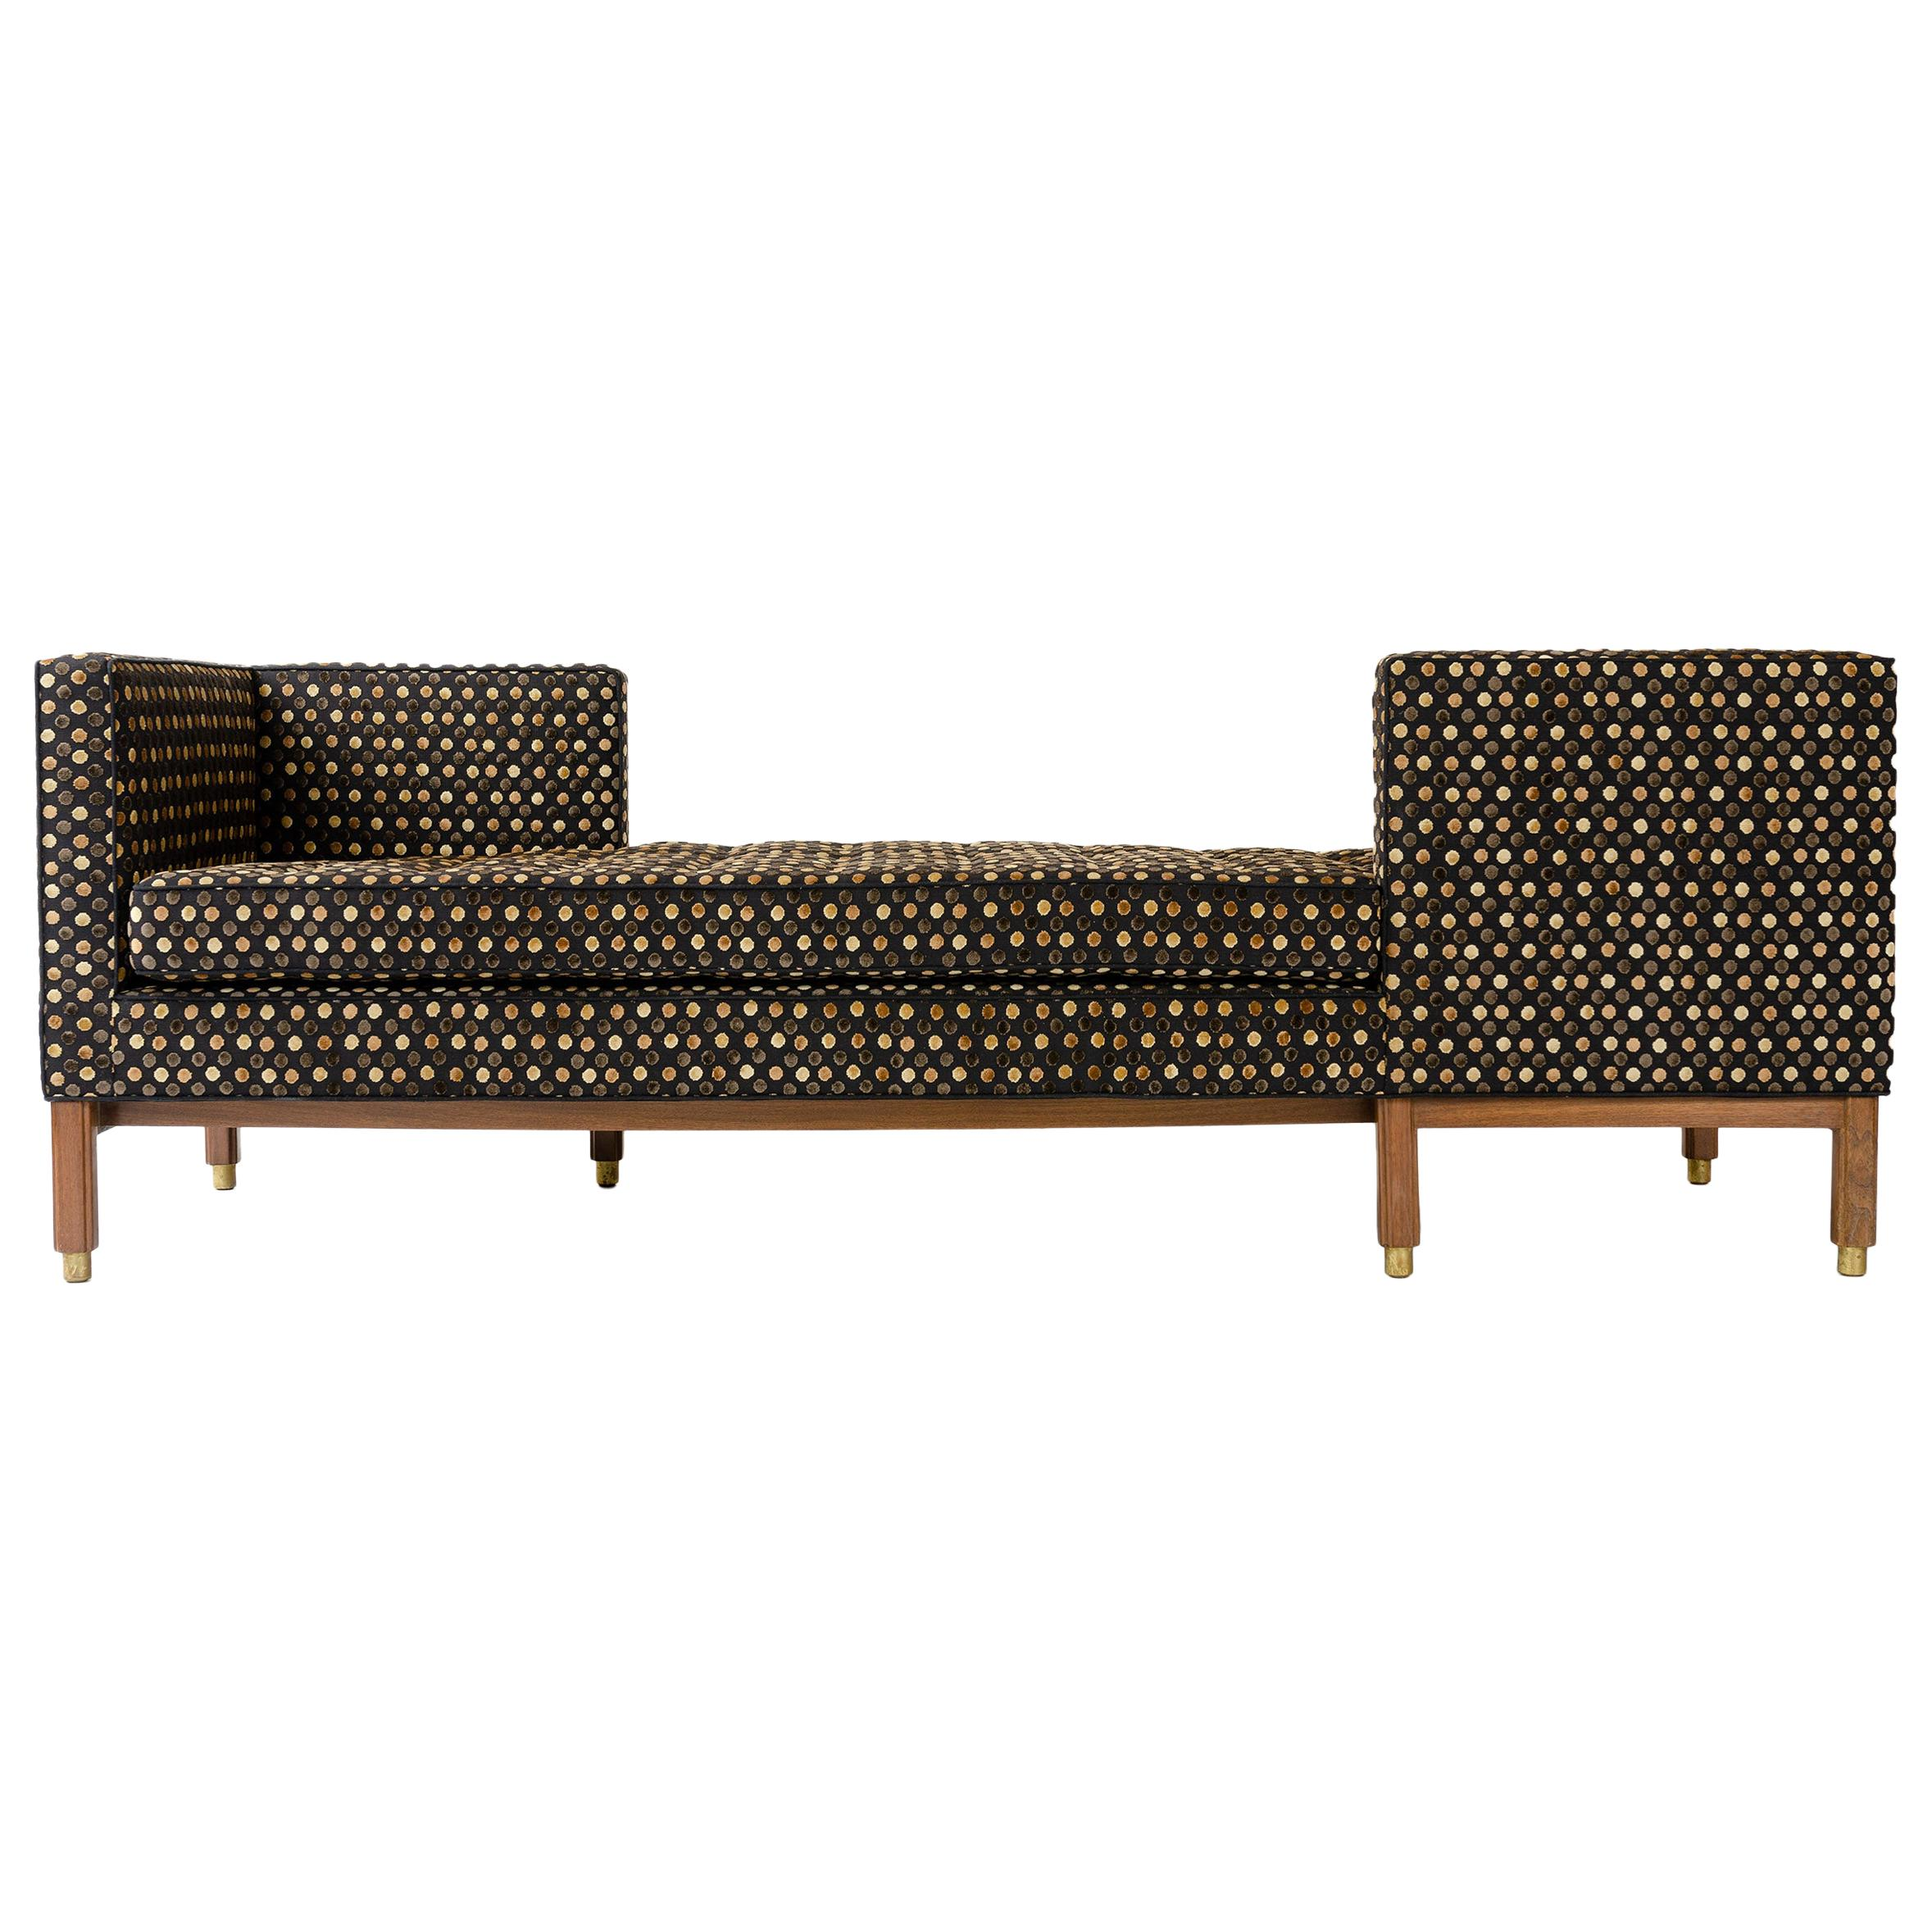 Pleasing Antique And Vintage Sofas 9 517 For Sale At 1Stdibs Alphanode Cool Chair Designs And Ideas Alphanodeonline